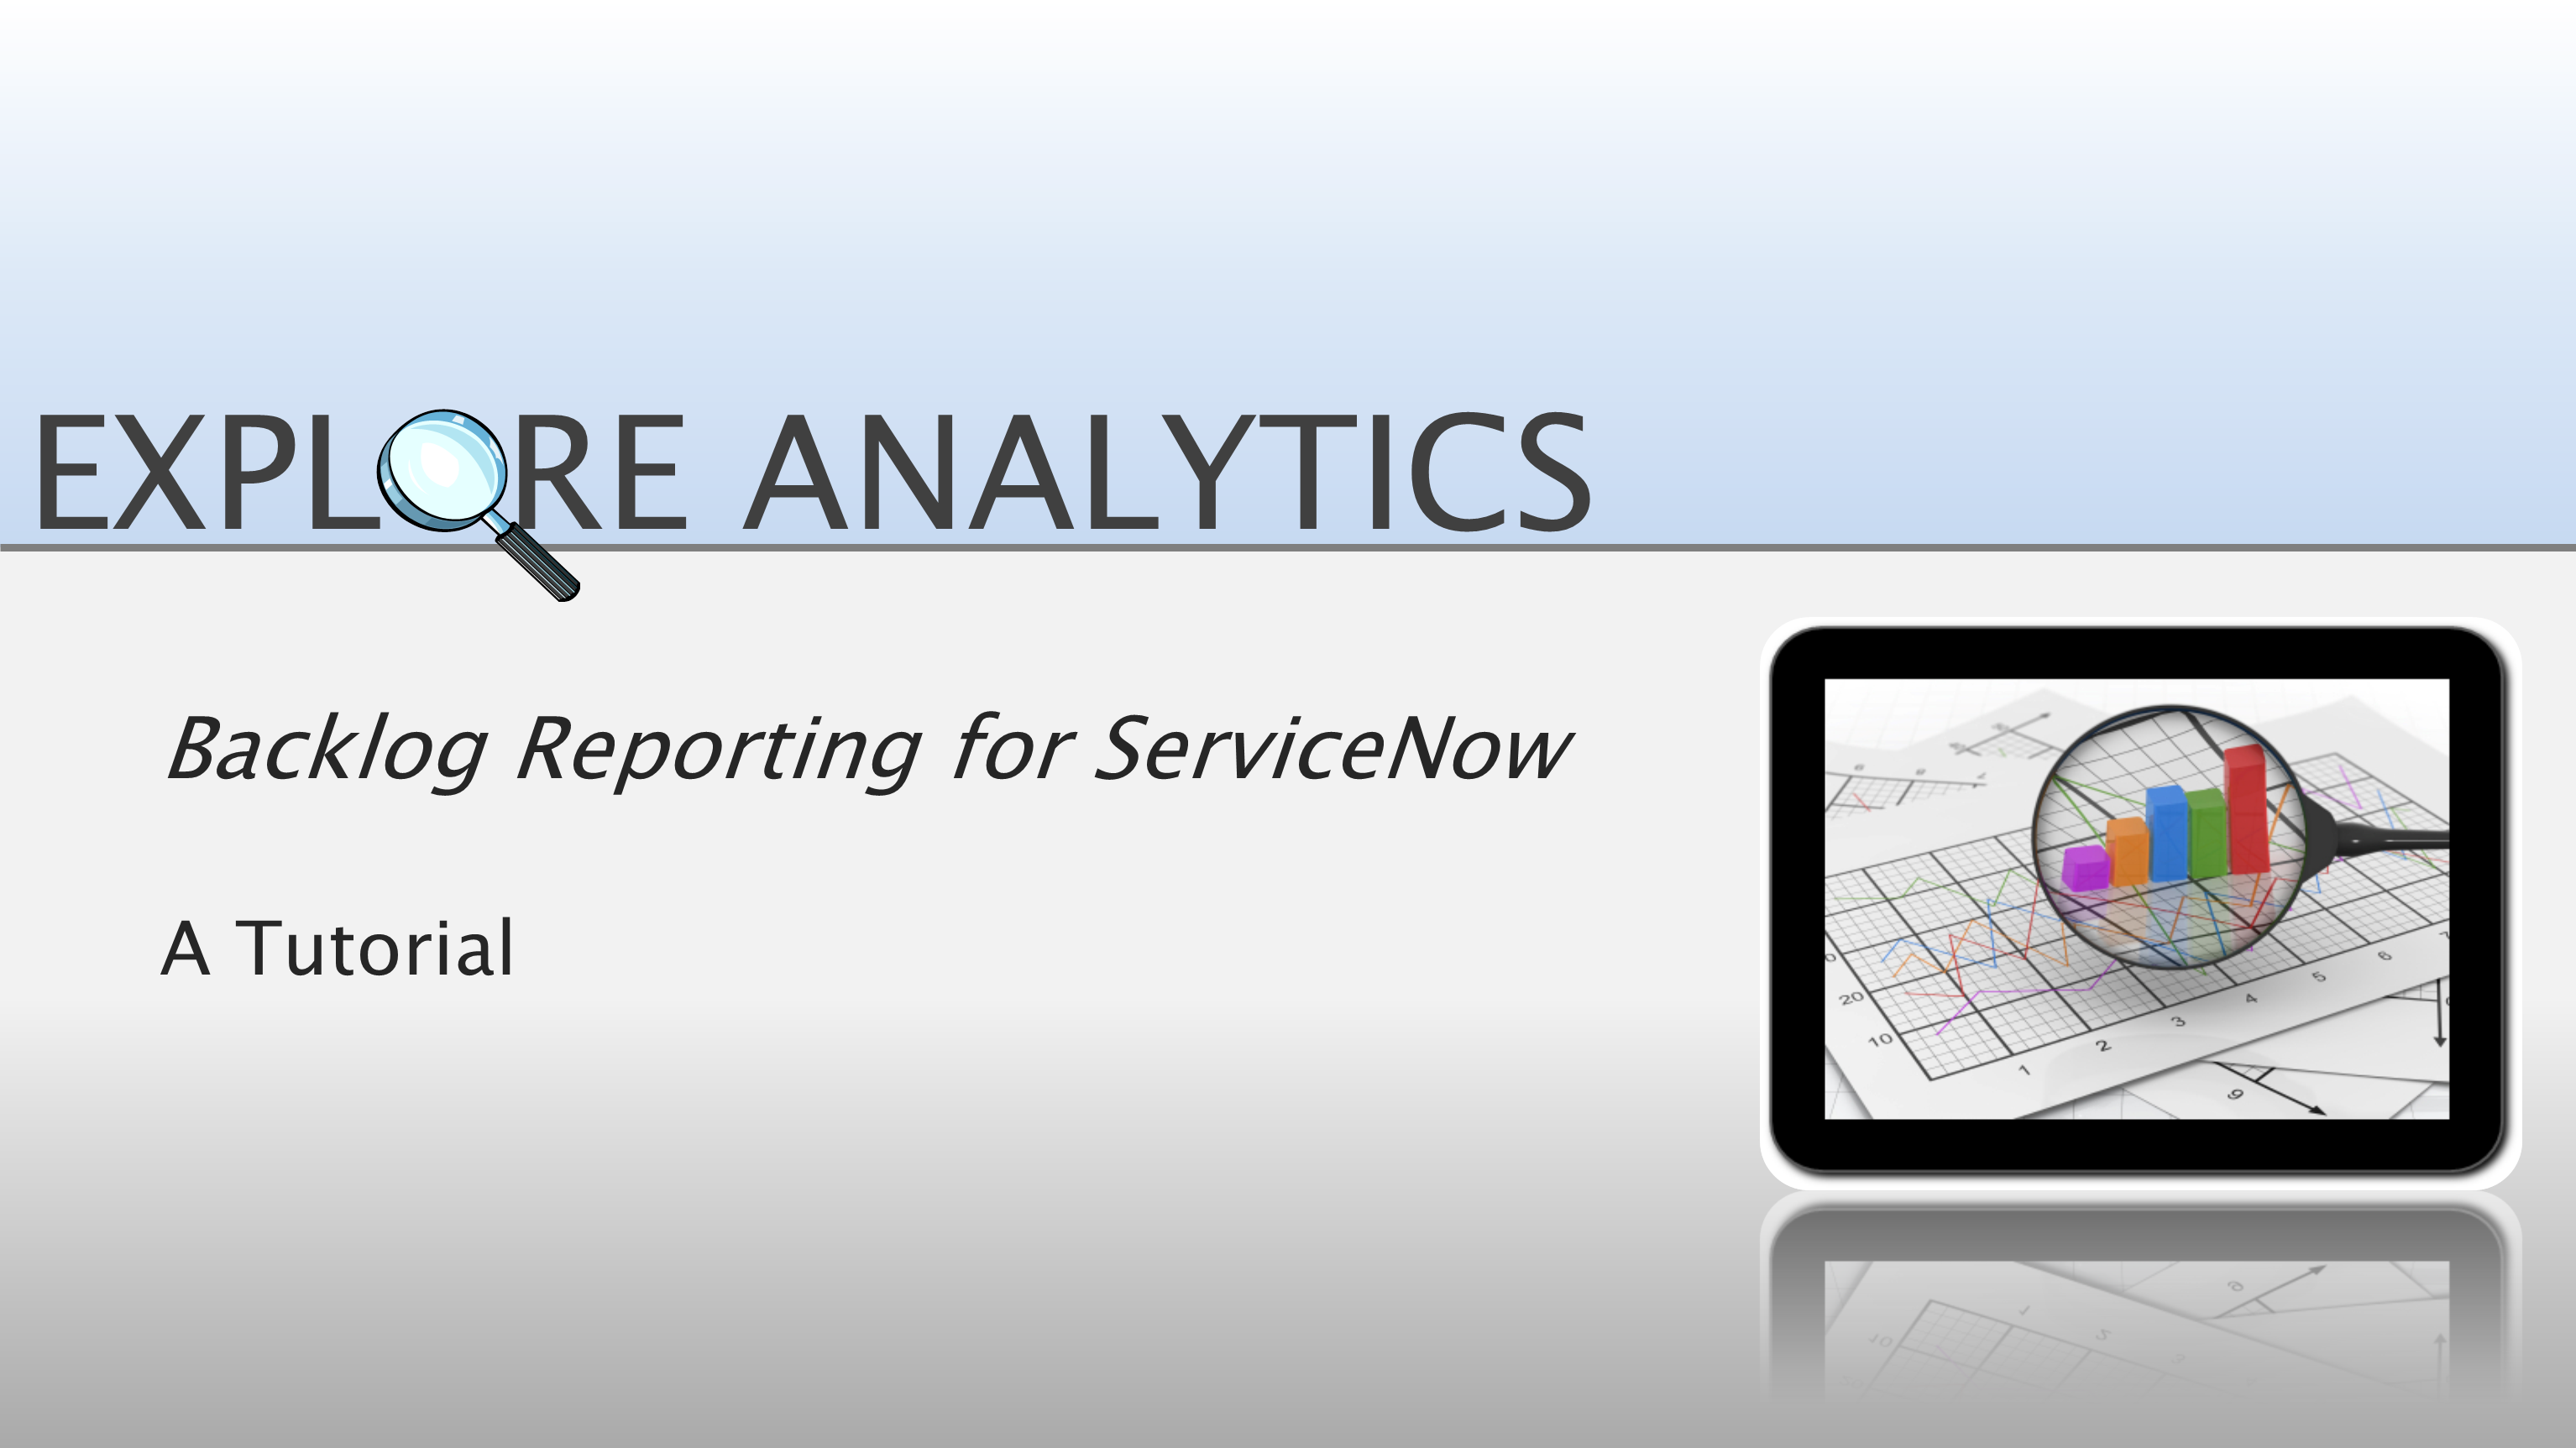 Backlog Reporting for ServiceNow